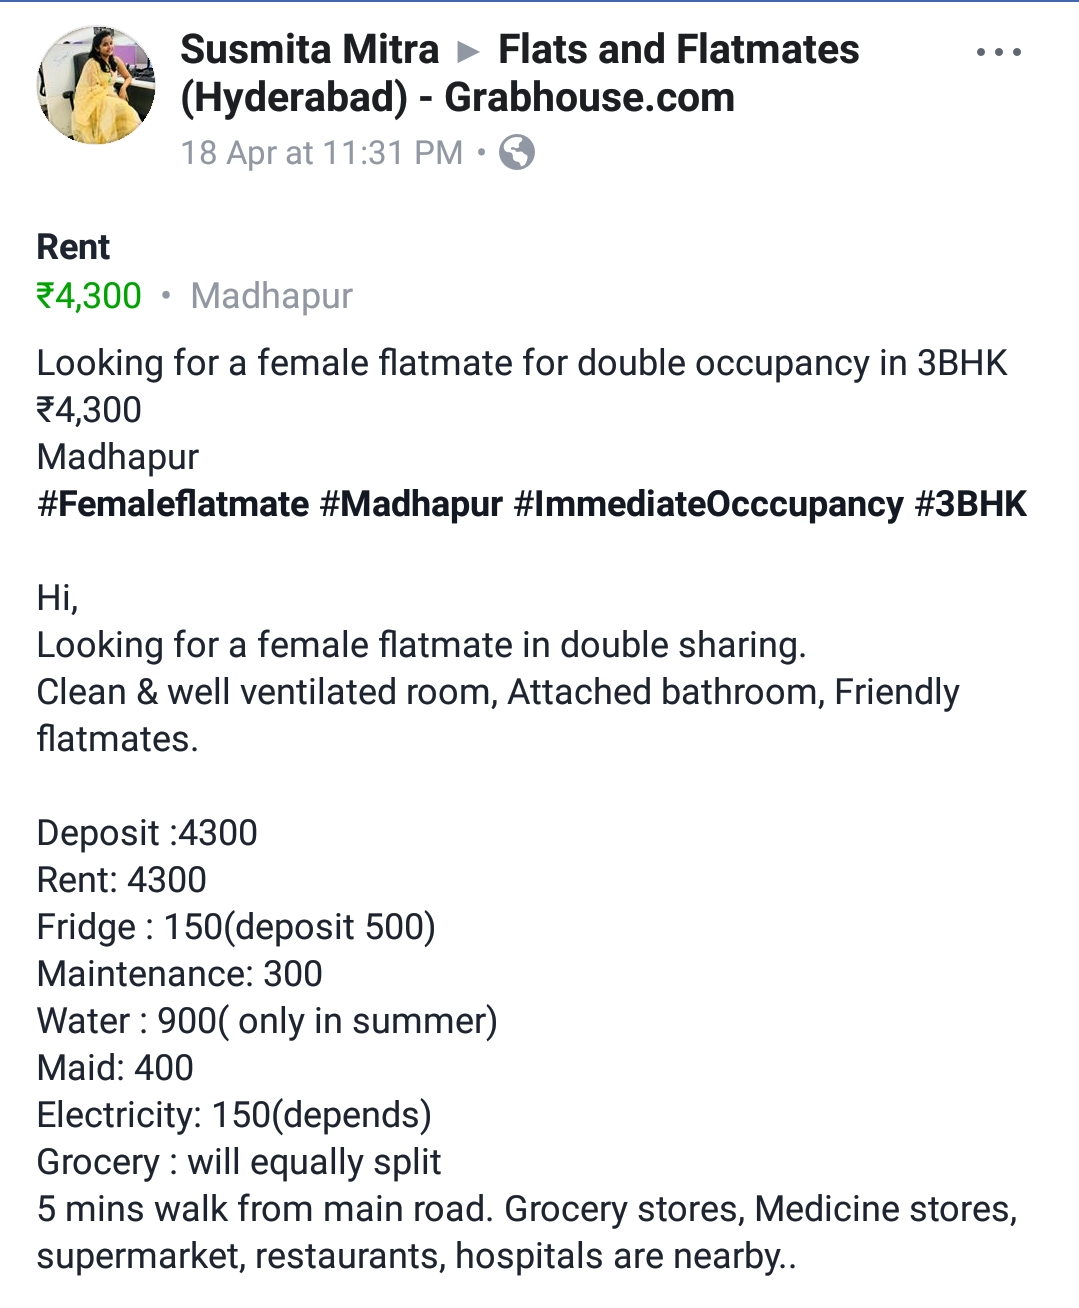 Need a female flatmate for double occupancy in 3BHK